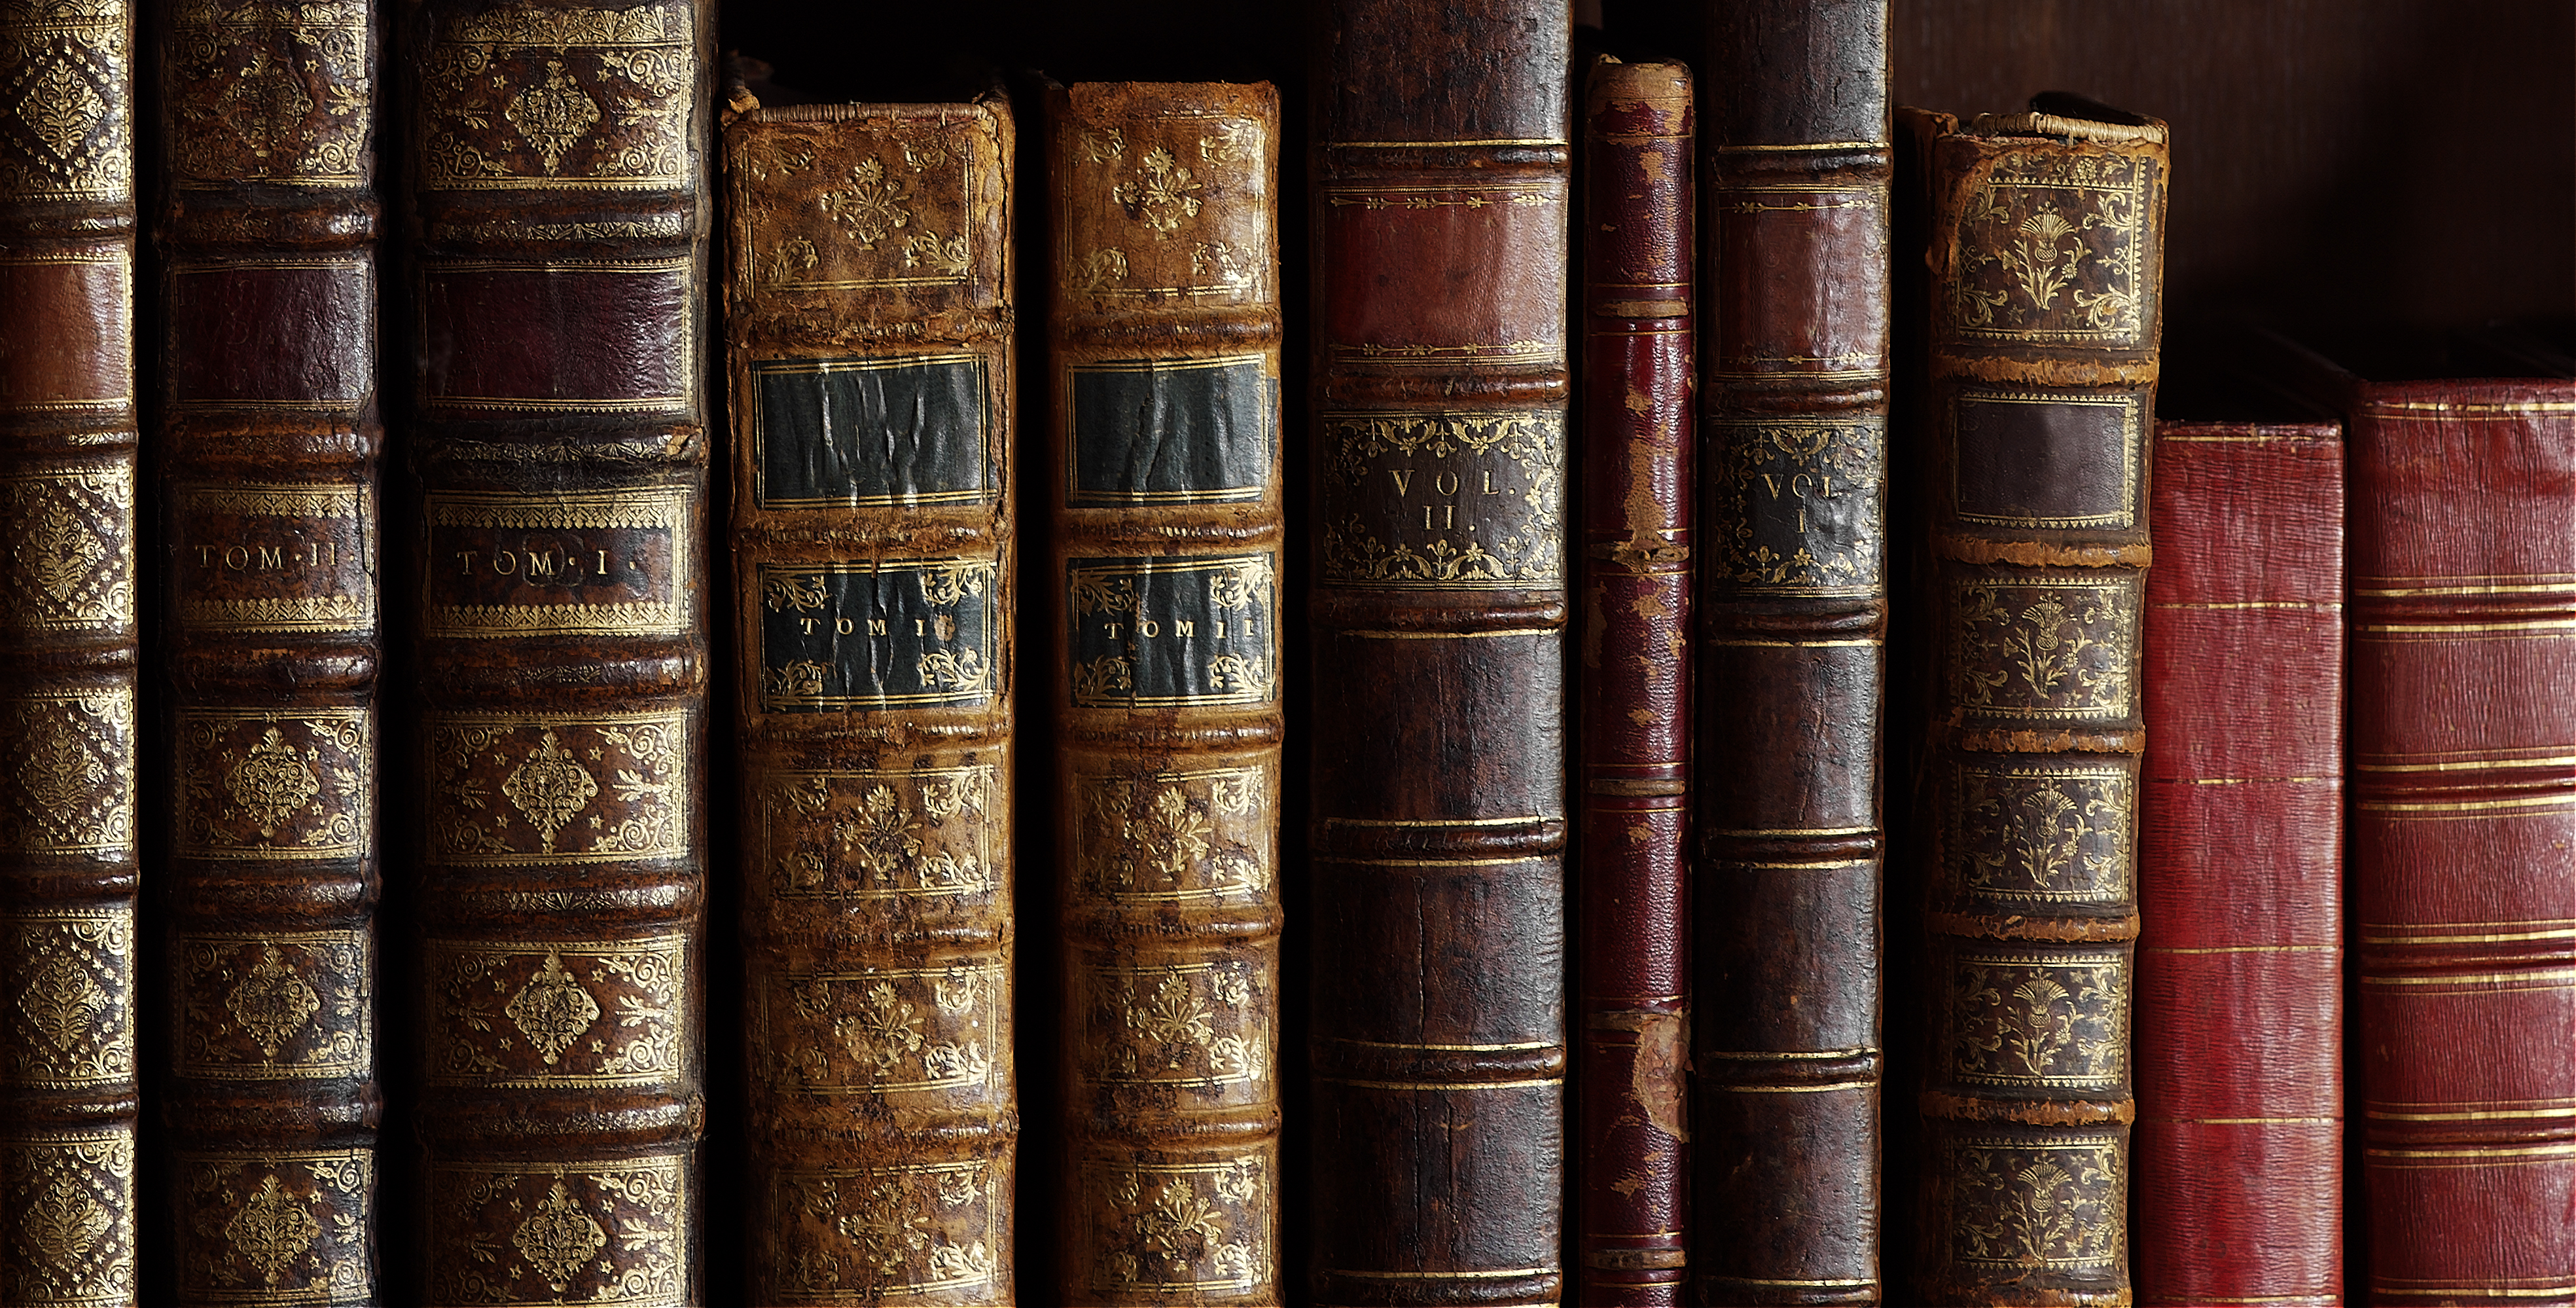 old books with vintage bindings and beautiful gilded leather book covers